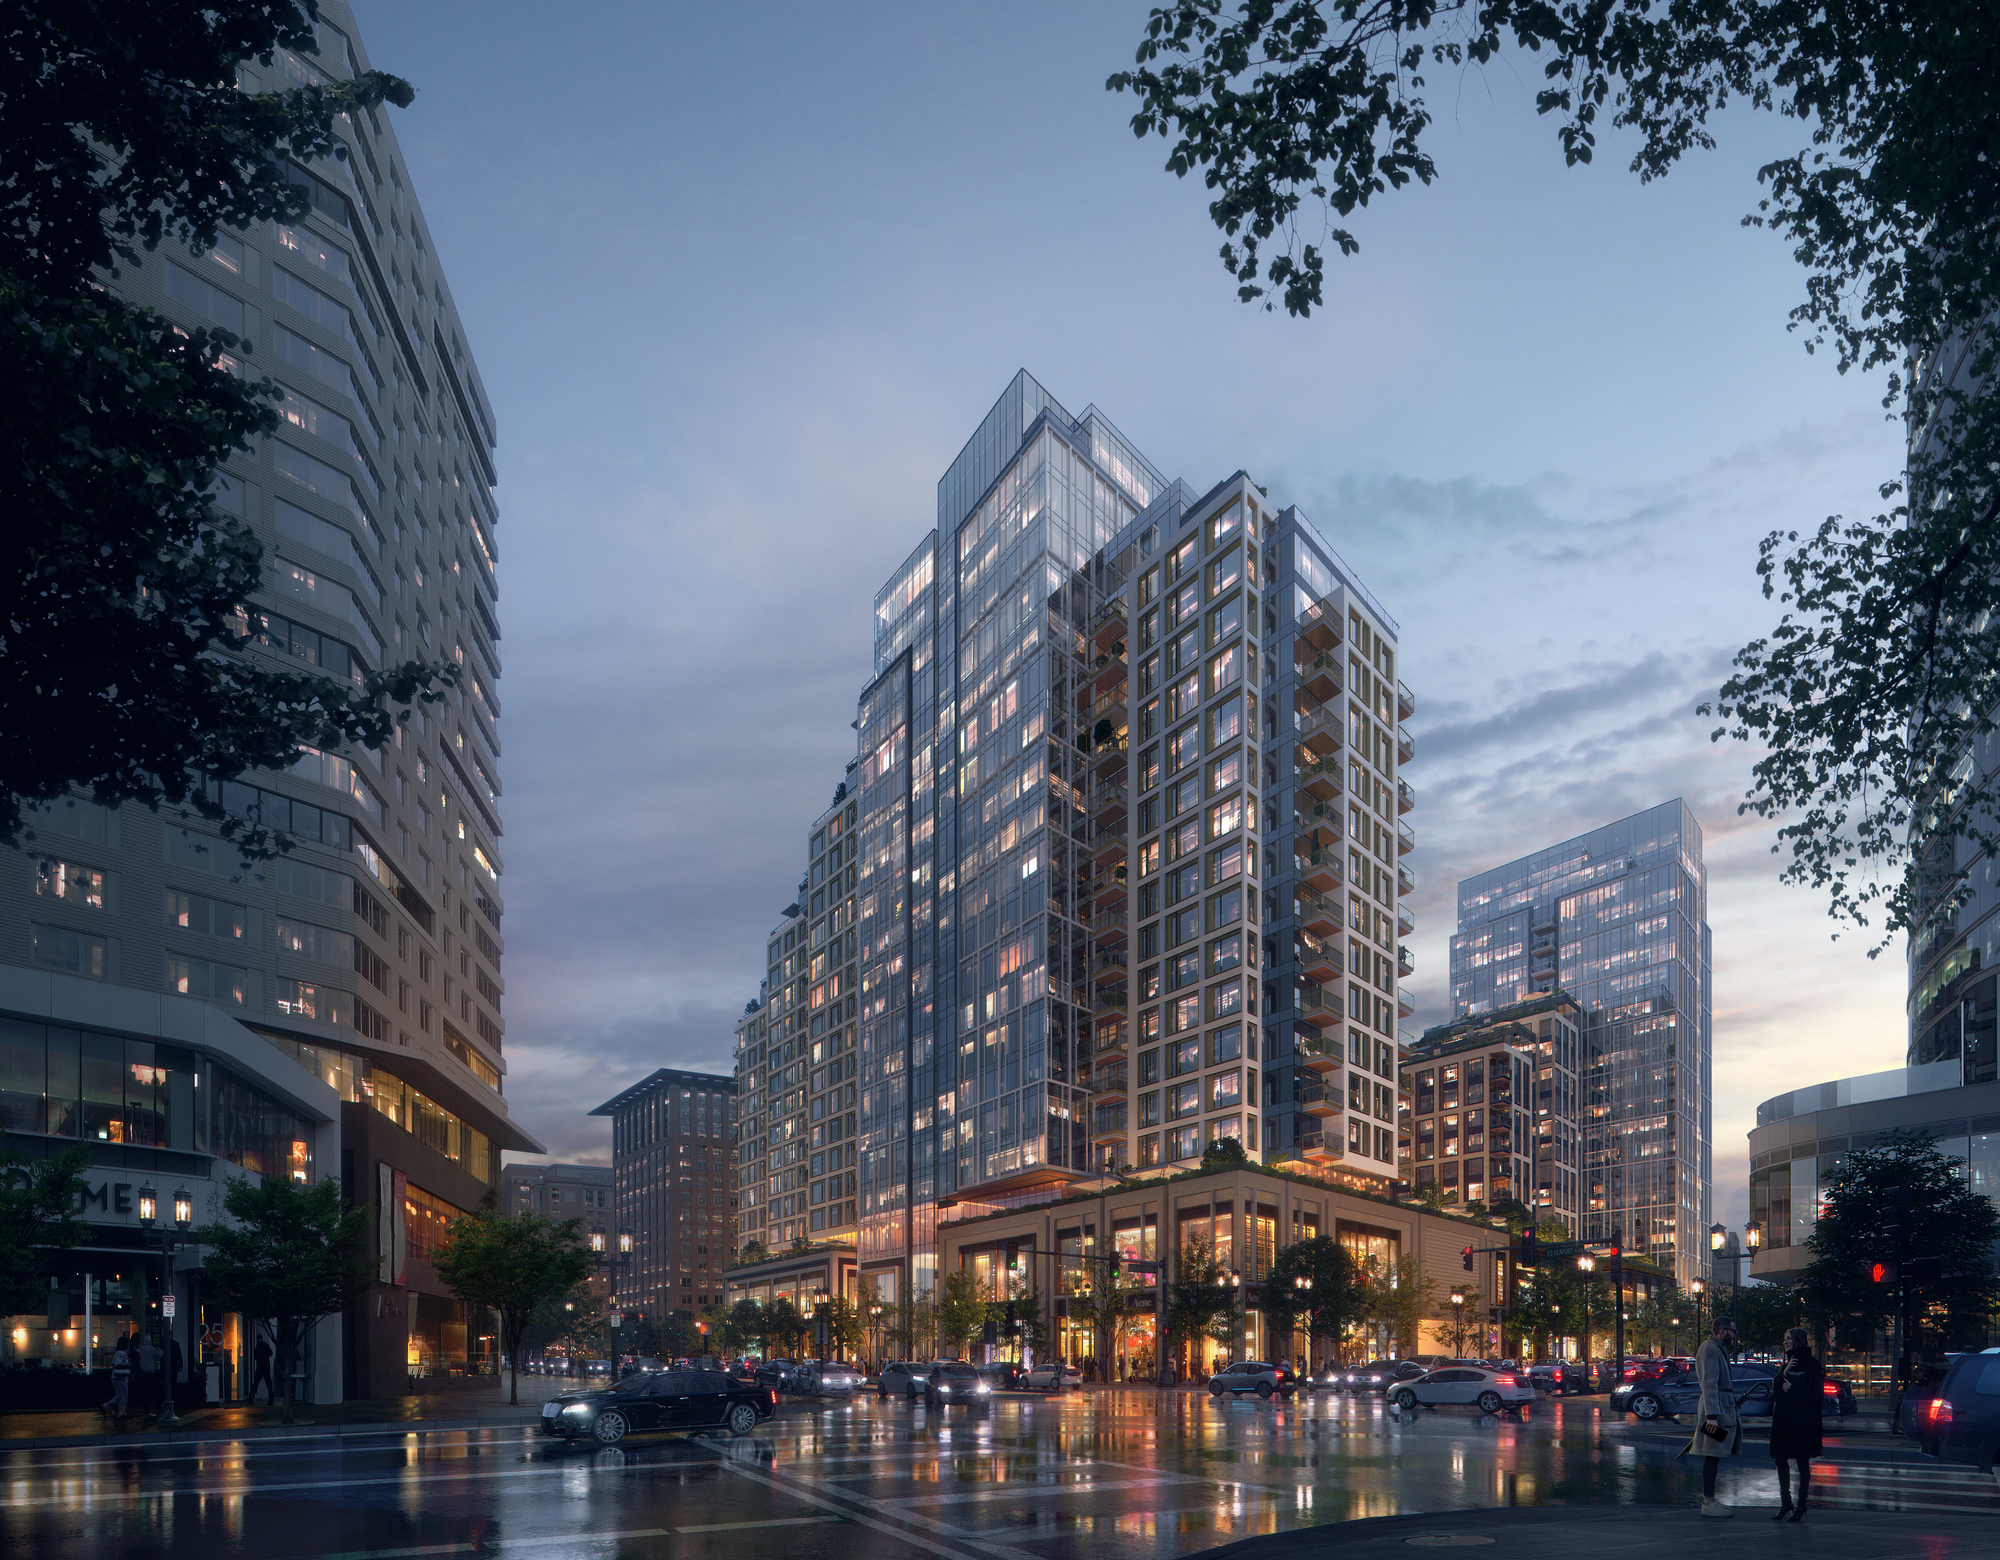 KPF Advances Growth of Boston Seaport with Towered Mixed-Use Building